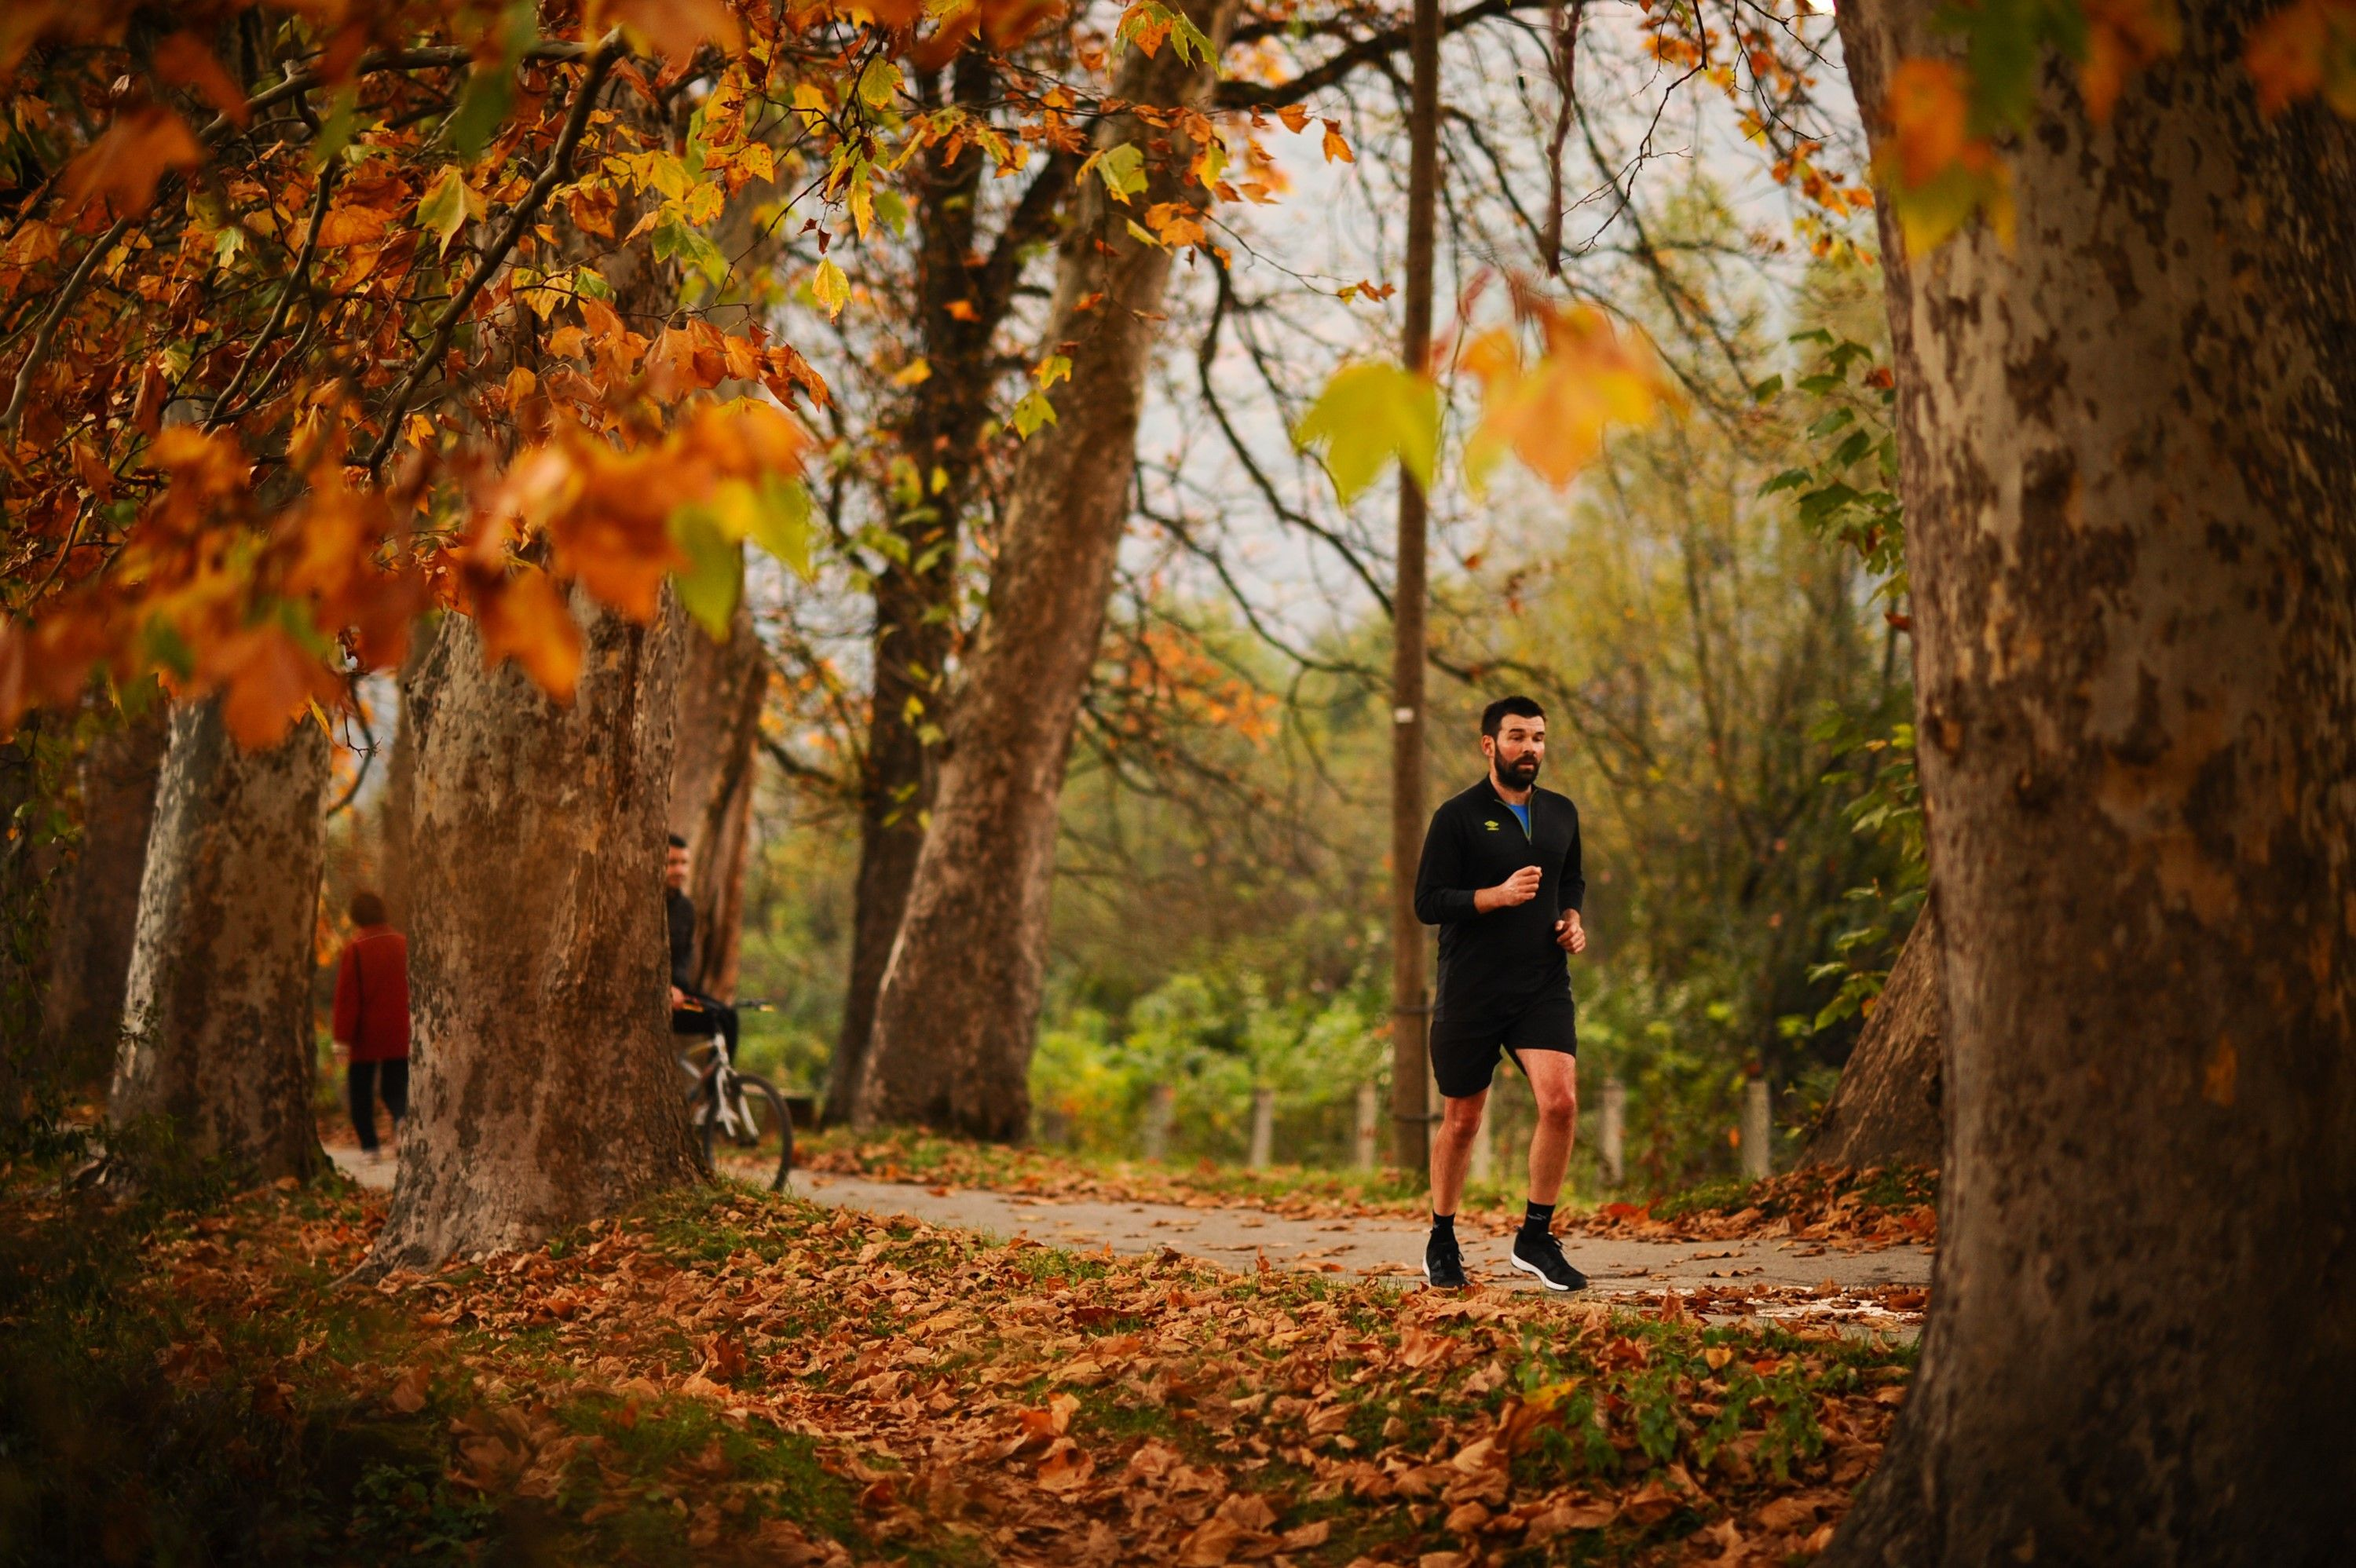 Coronavirus: Runners, it's time to listen up about the new running etiquette